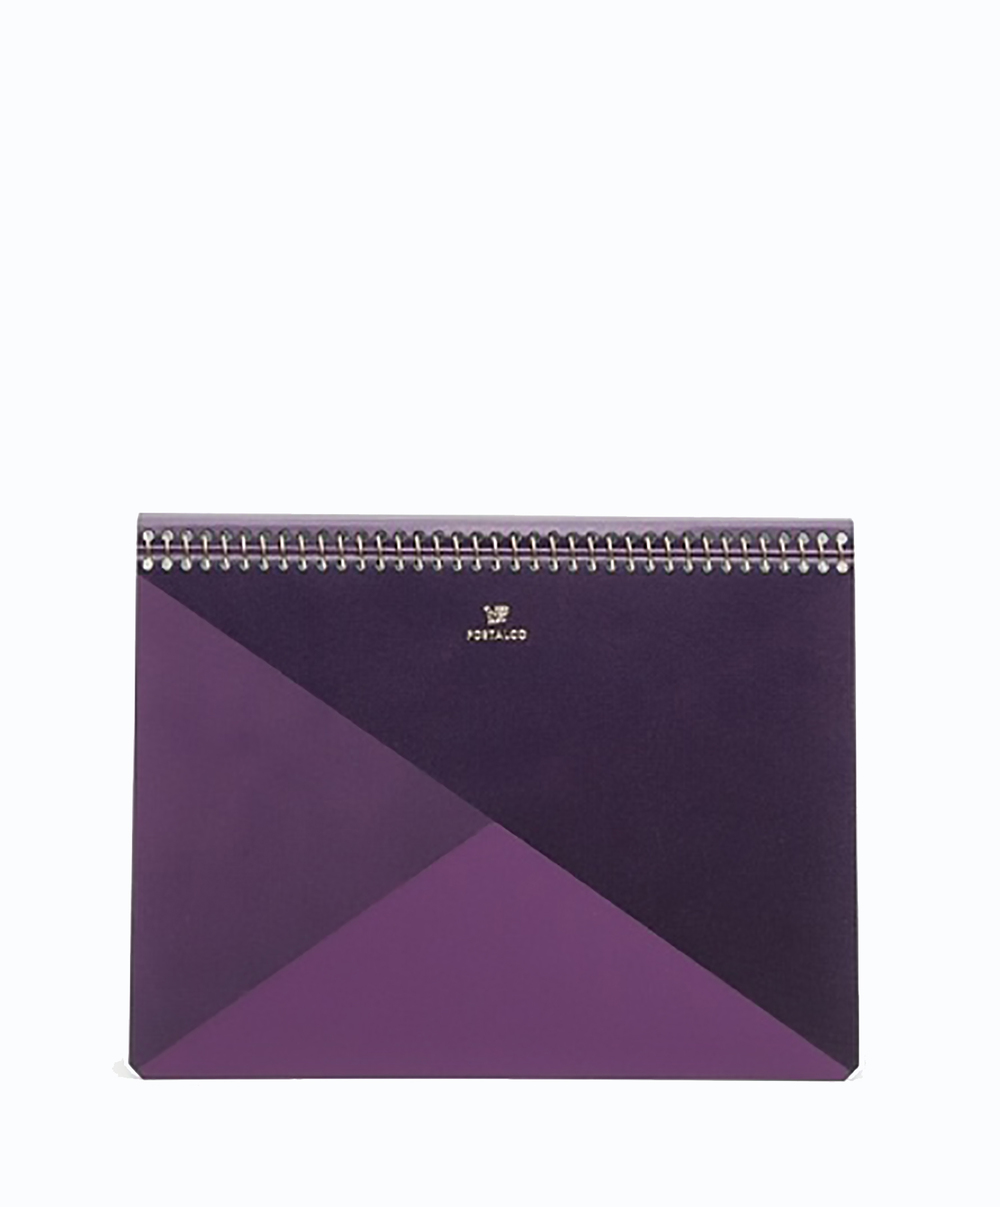 need supply PostalCo notebook a5 in violet organized copy 1500.jpg